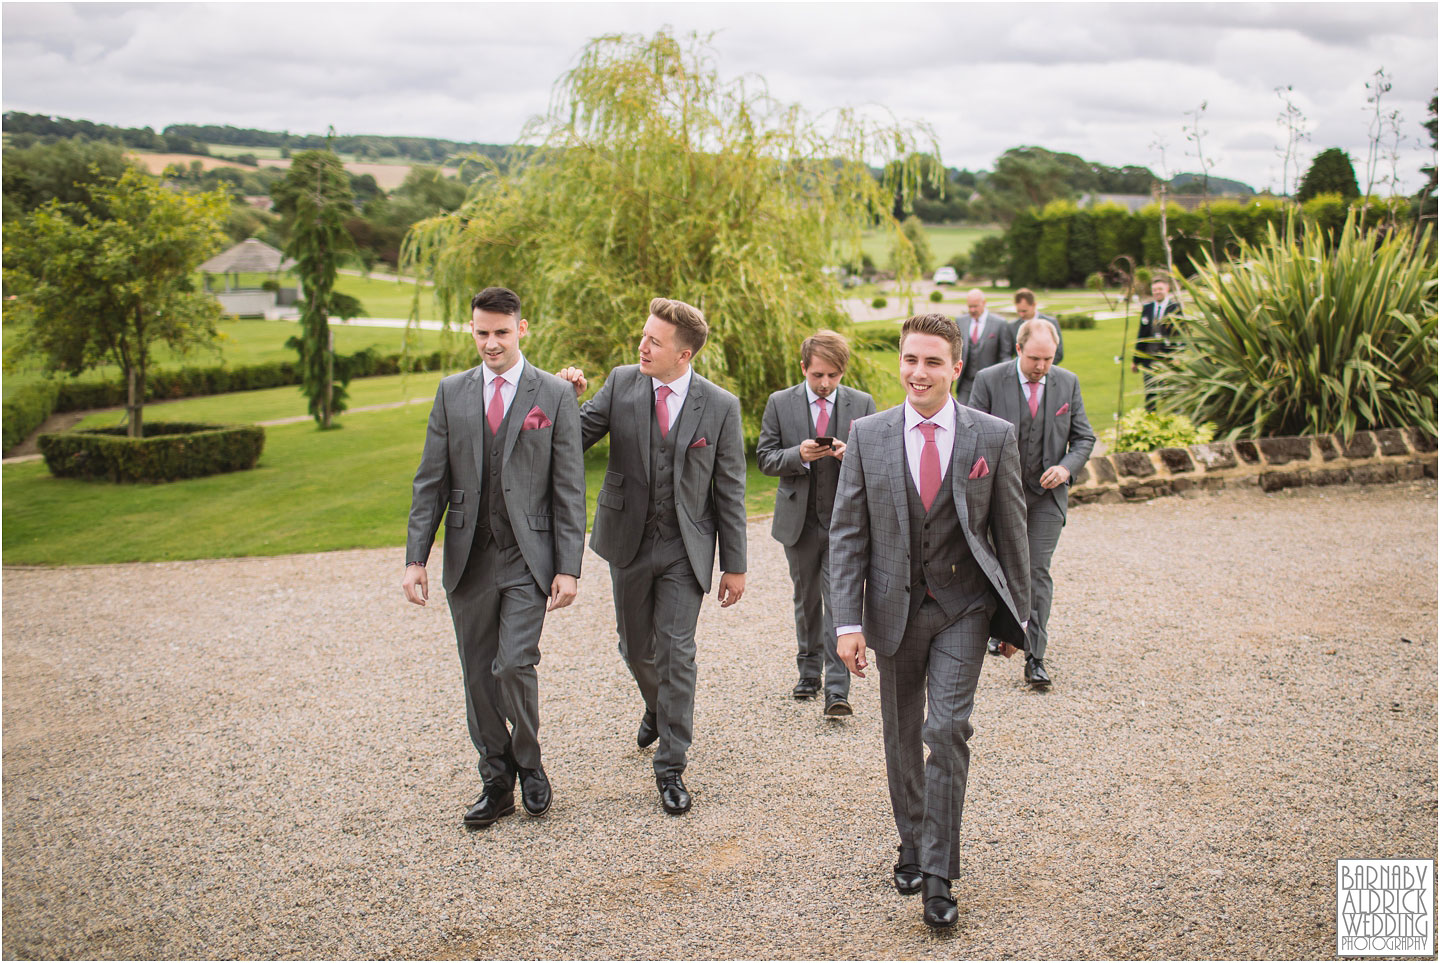 Groomsmen natural wedding photo at Yorkshire Wedding Barn near Richmond